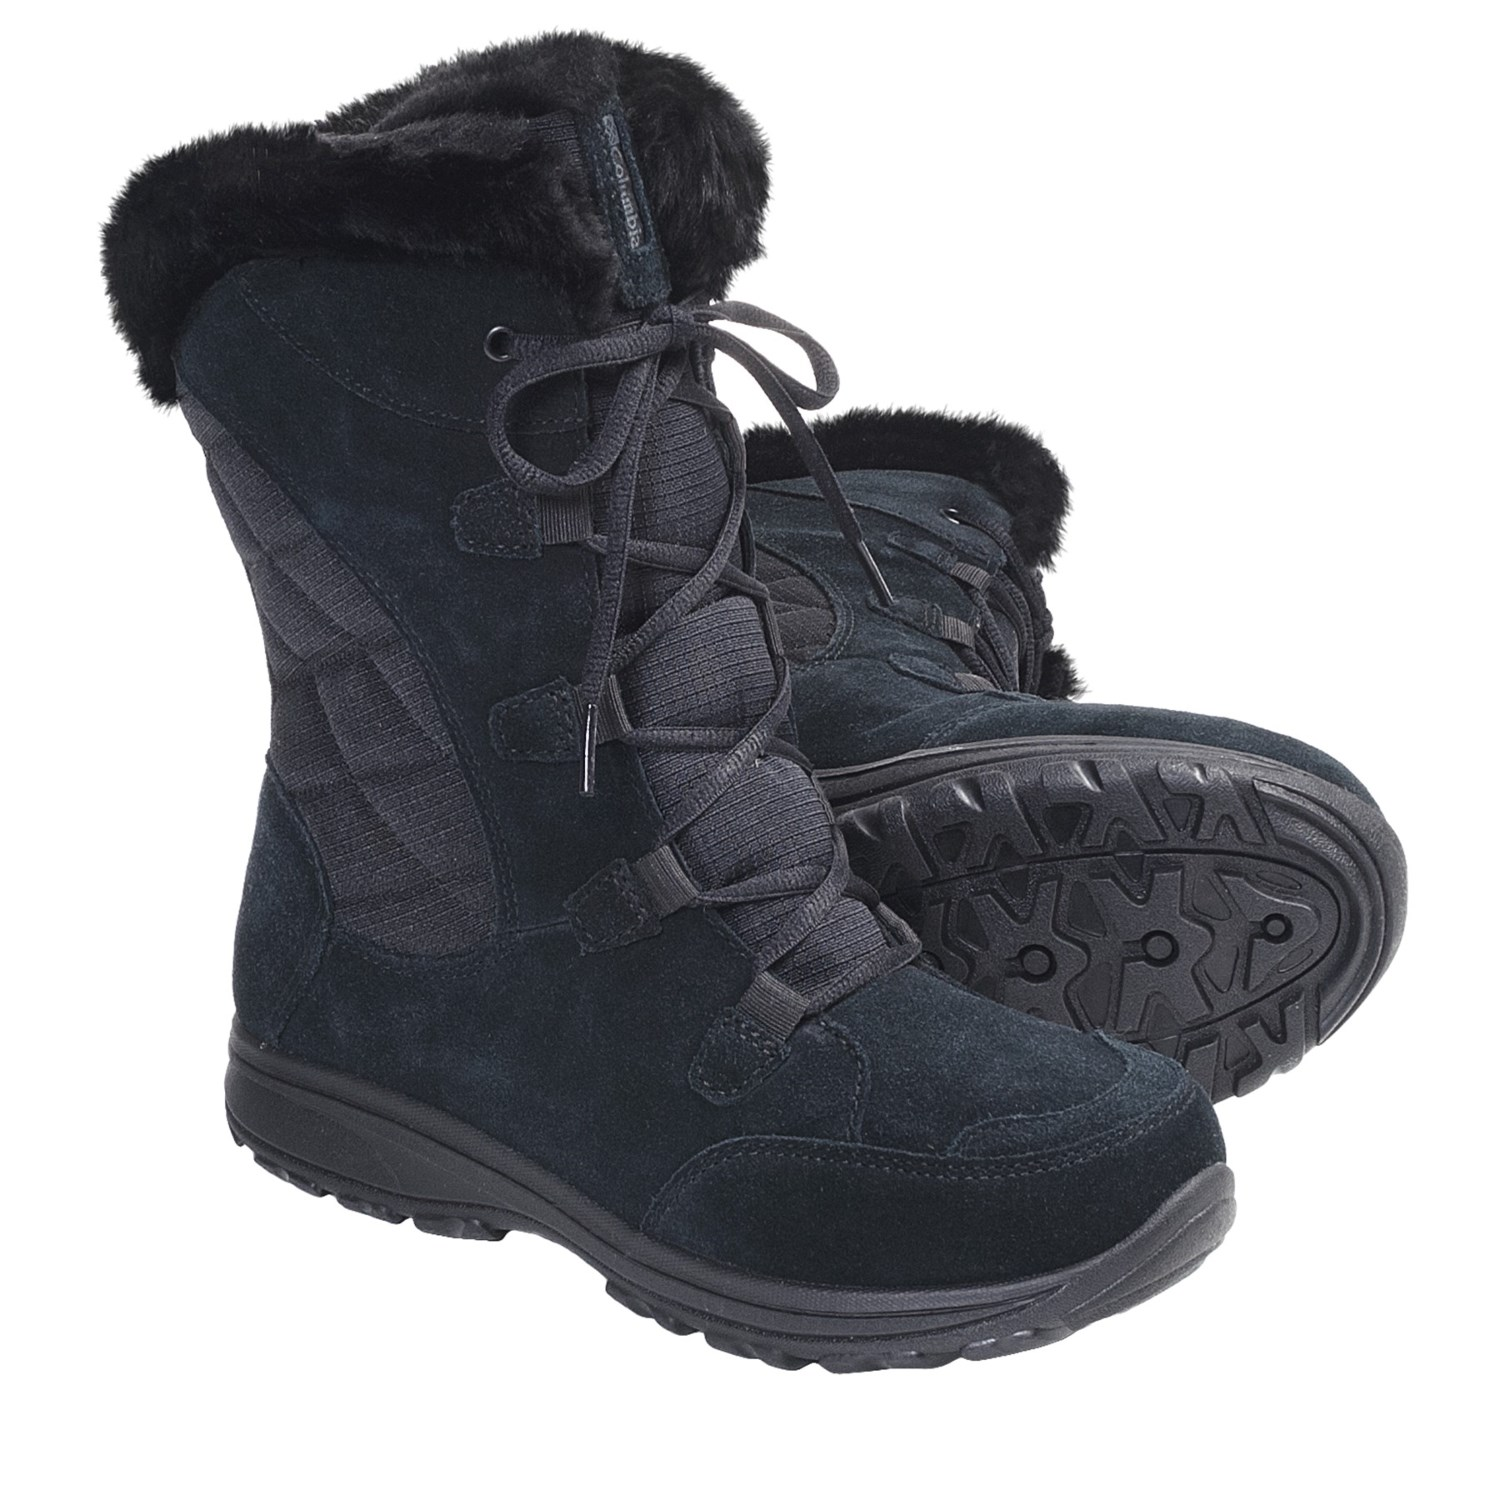 Image result for columbia black winter boots